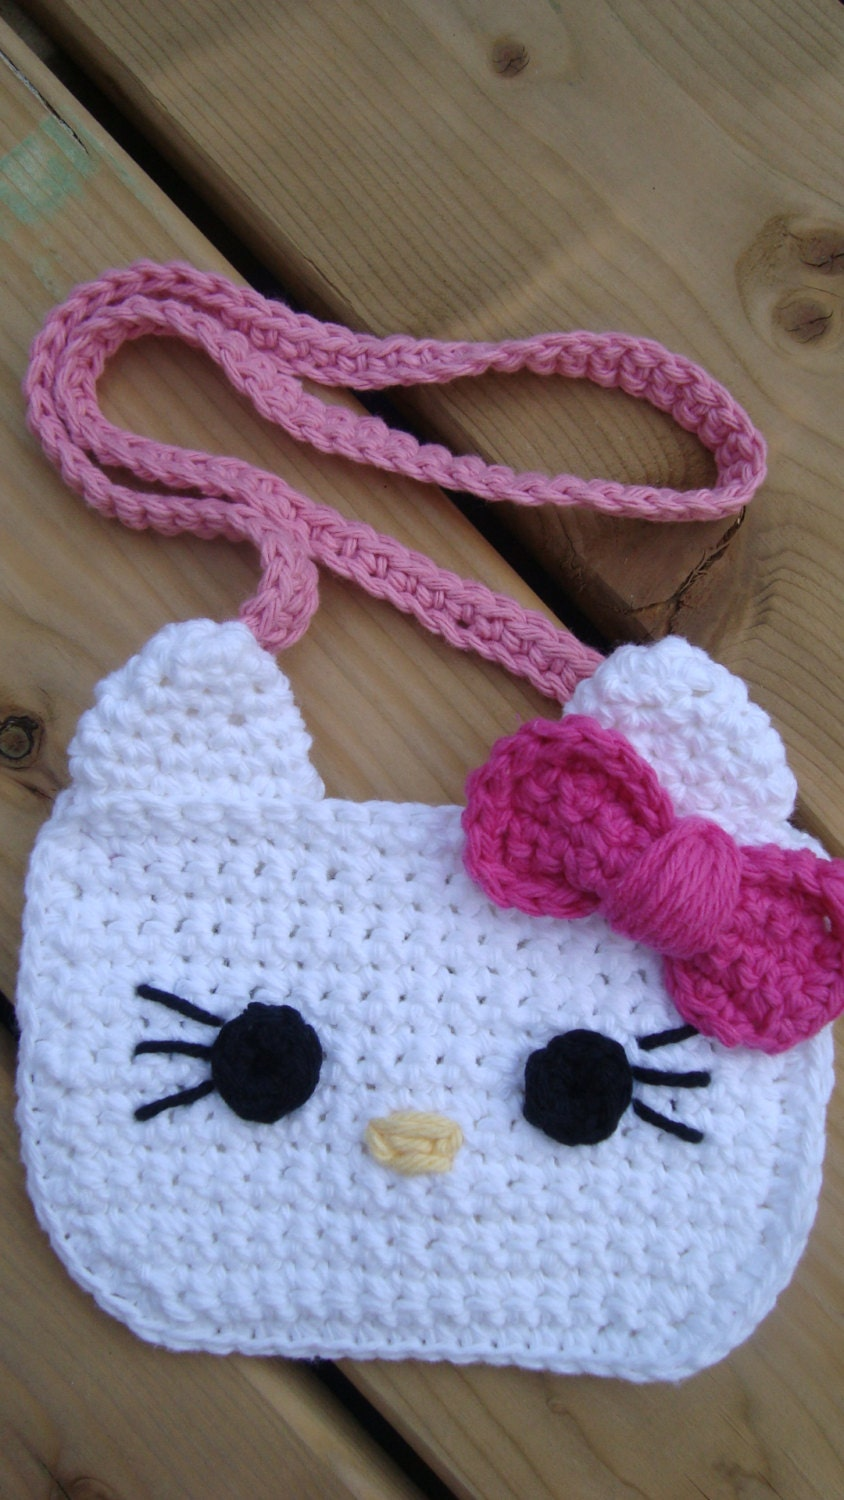 Crochet Purse Patterns Hello Kitty : Items similar to Crochet Hello Kitty purse on Etsy